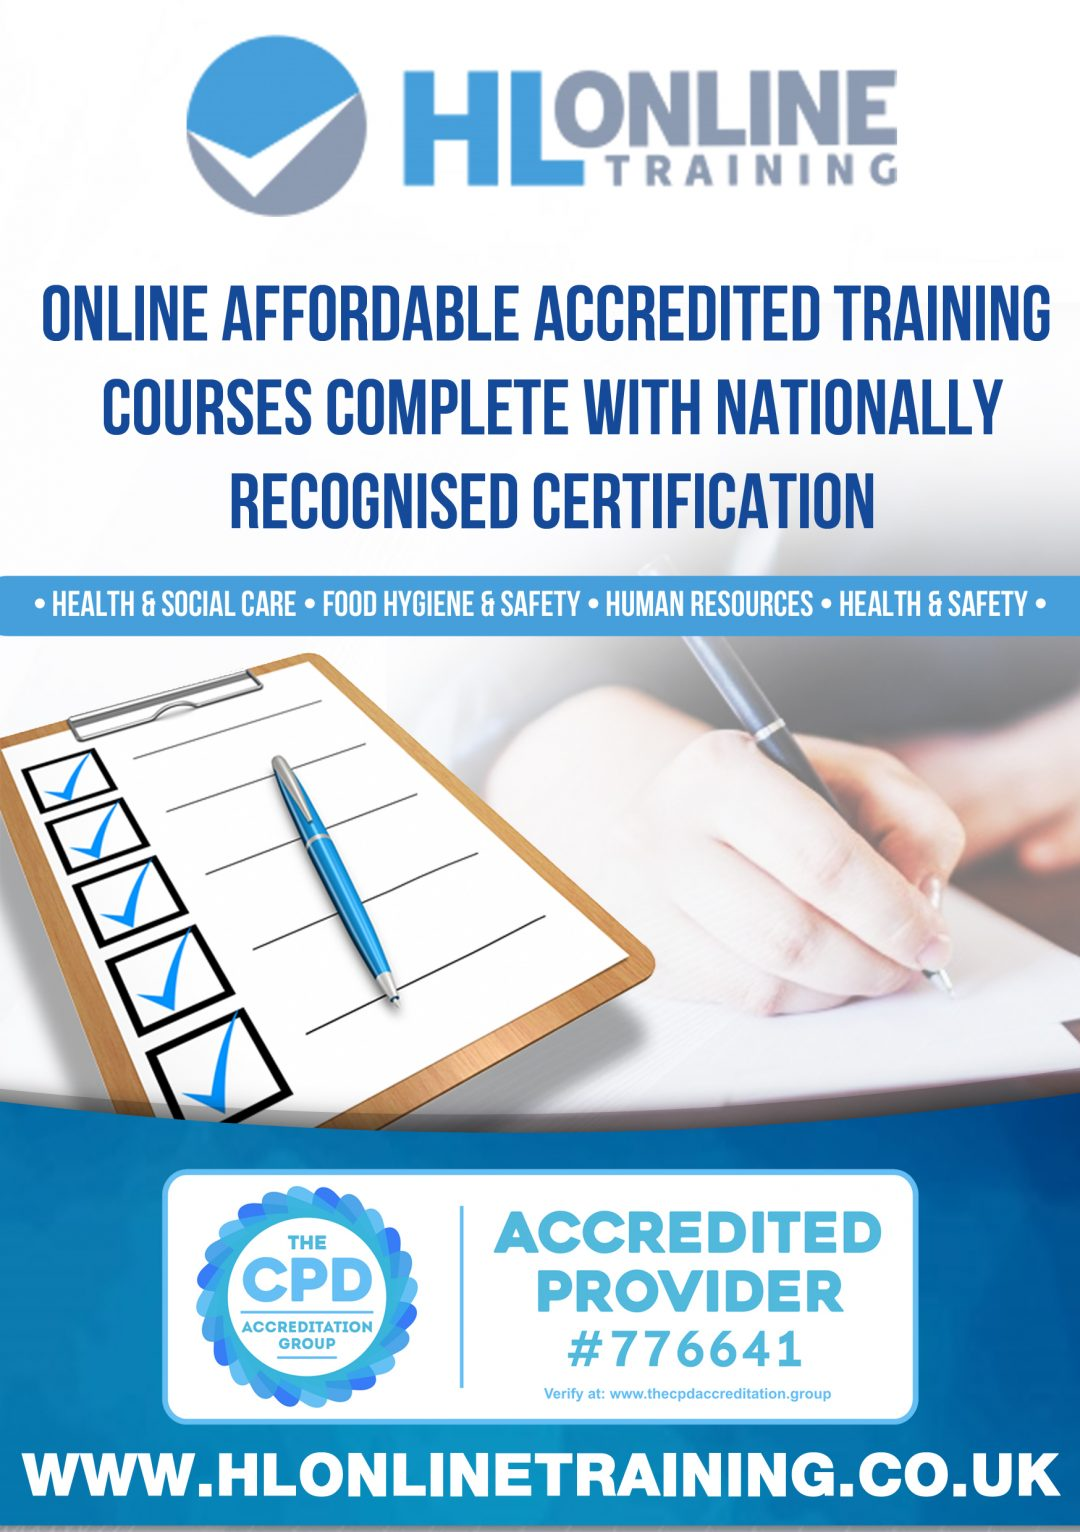 Our Online Training Courses Hl Online Training